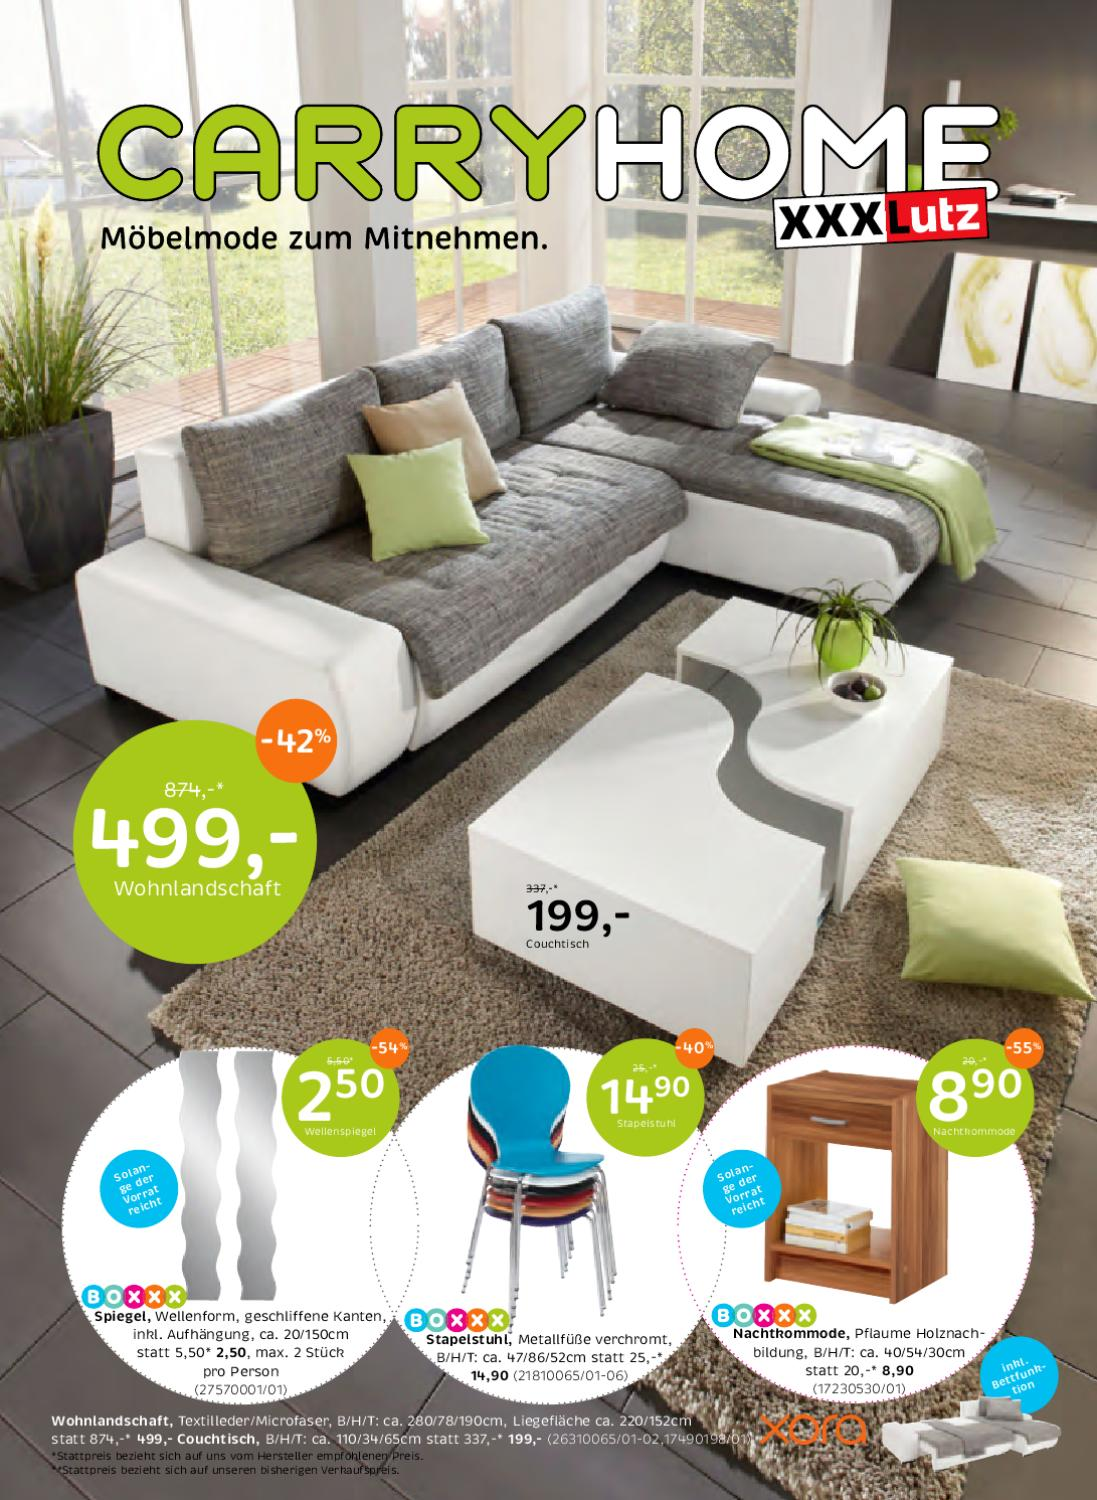 Carryhome Couchtisch Carryhome 29.01.-11.02.2012 By Aktionsfinder Gmbh - Issuu